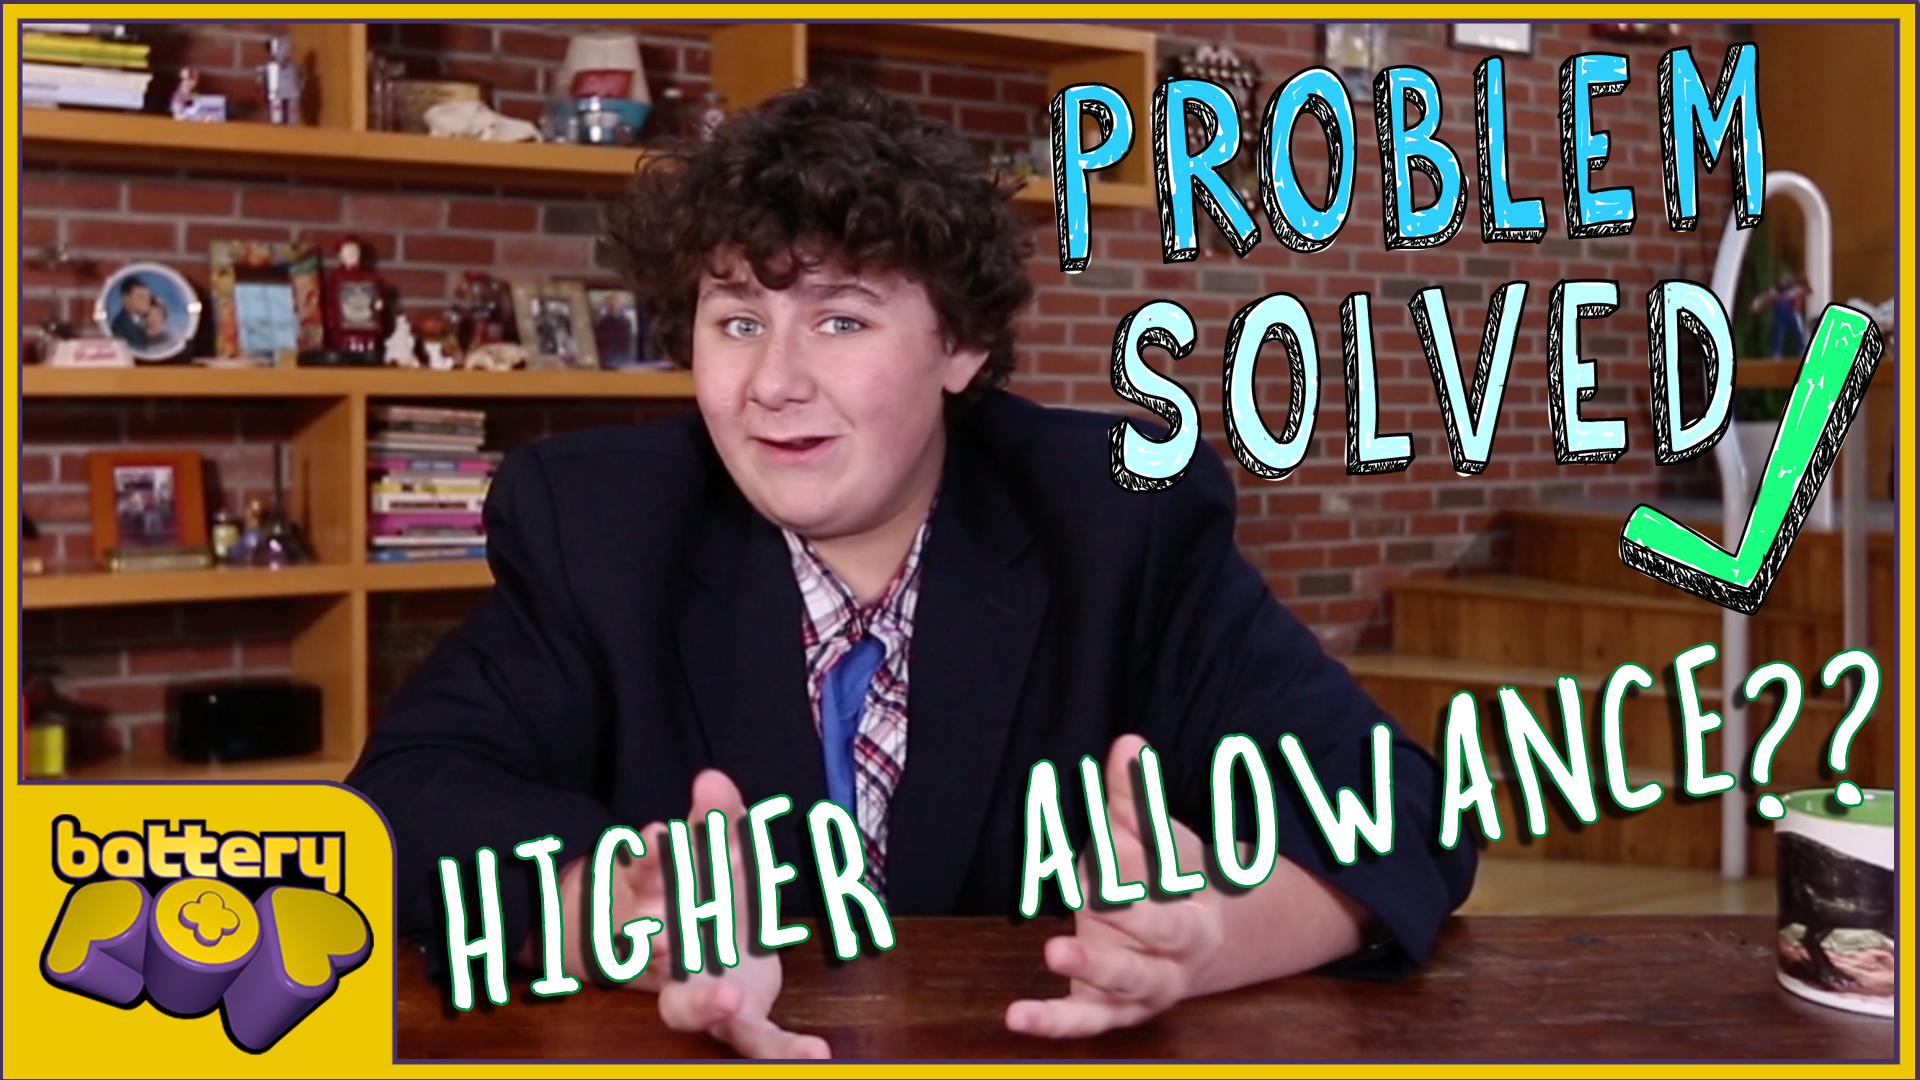 101 higher allowance problem solvedv2